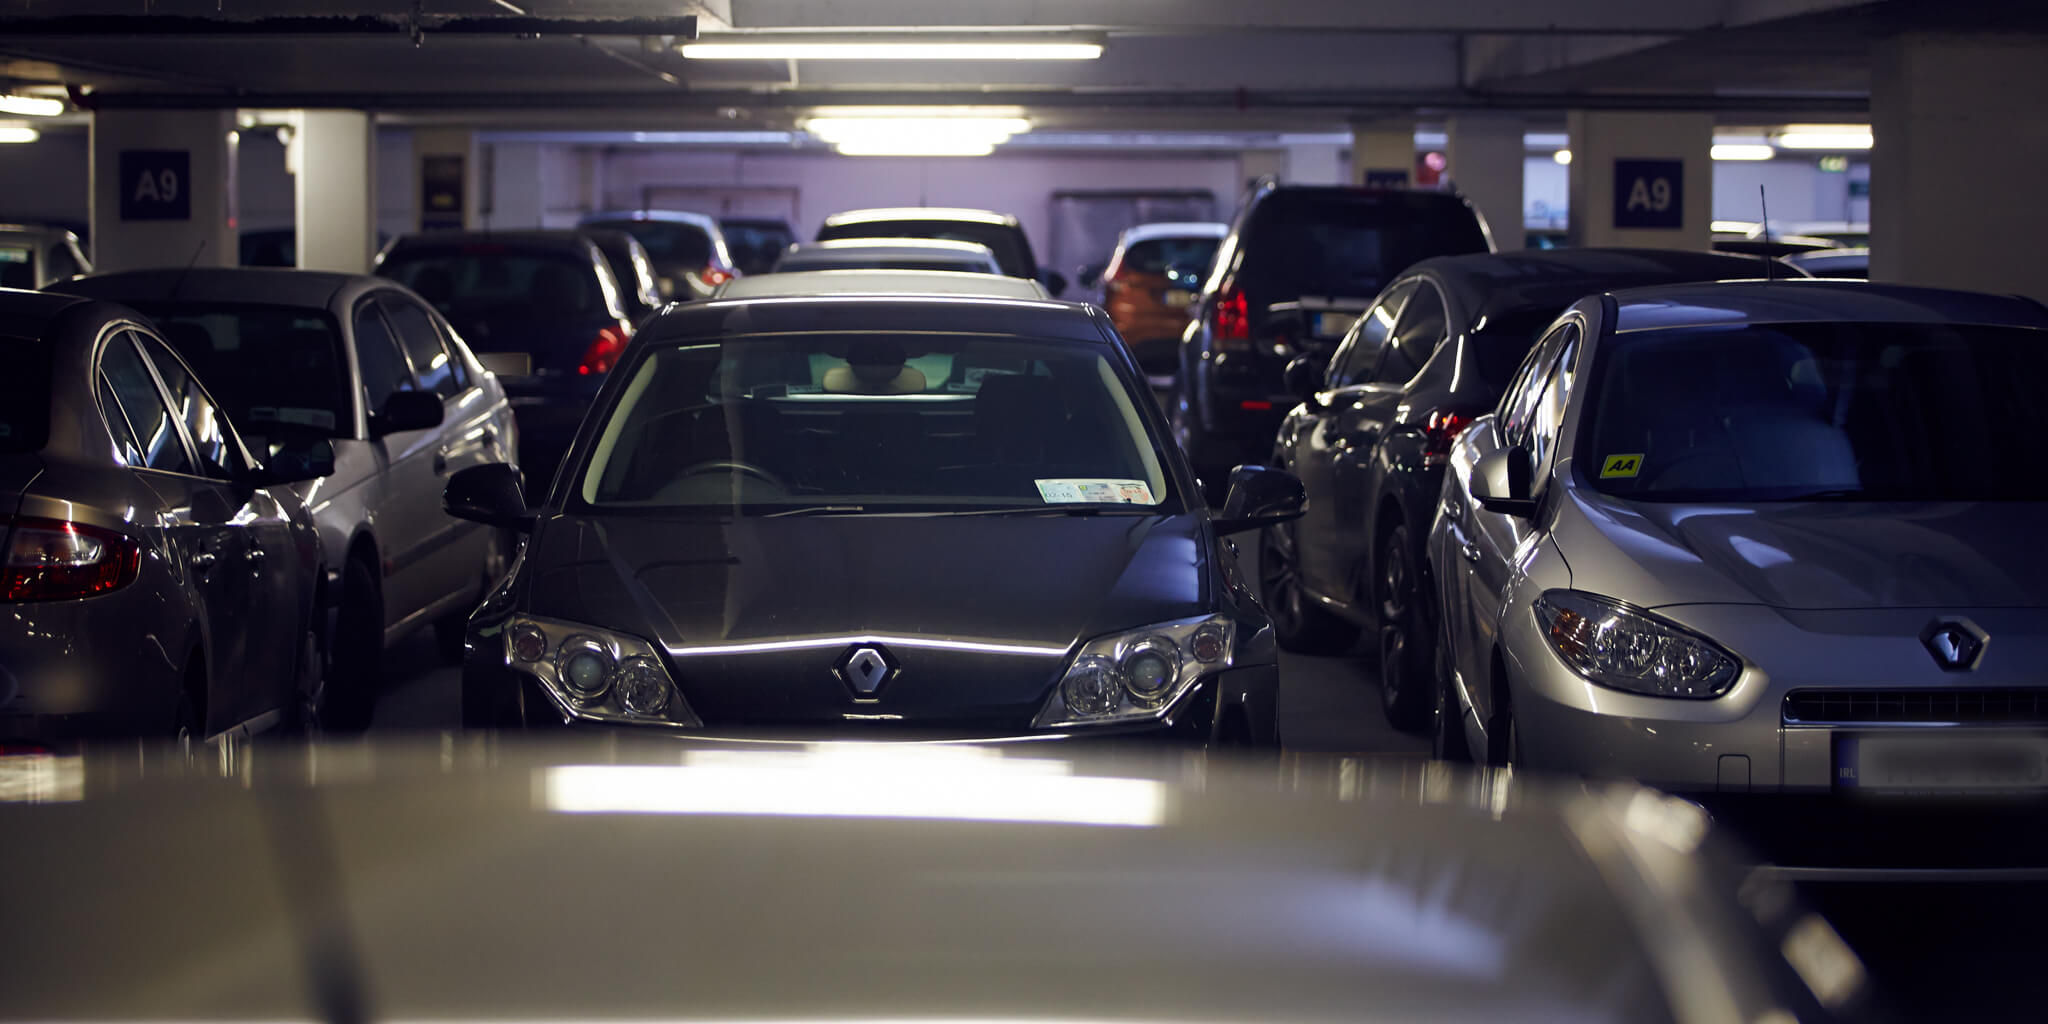 dublin airport car park - Le mandataire automobile occasion en france